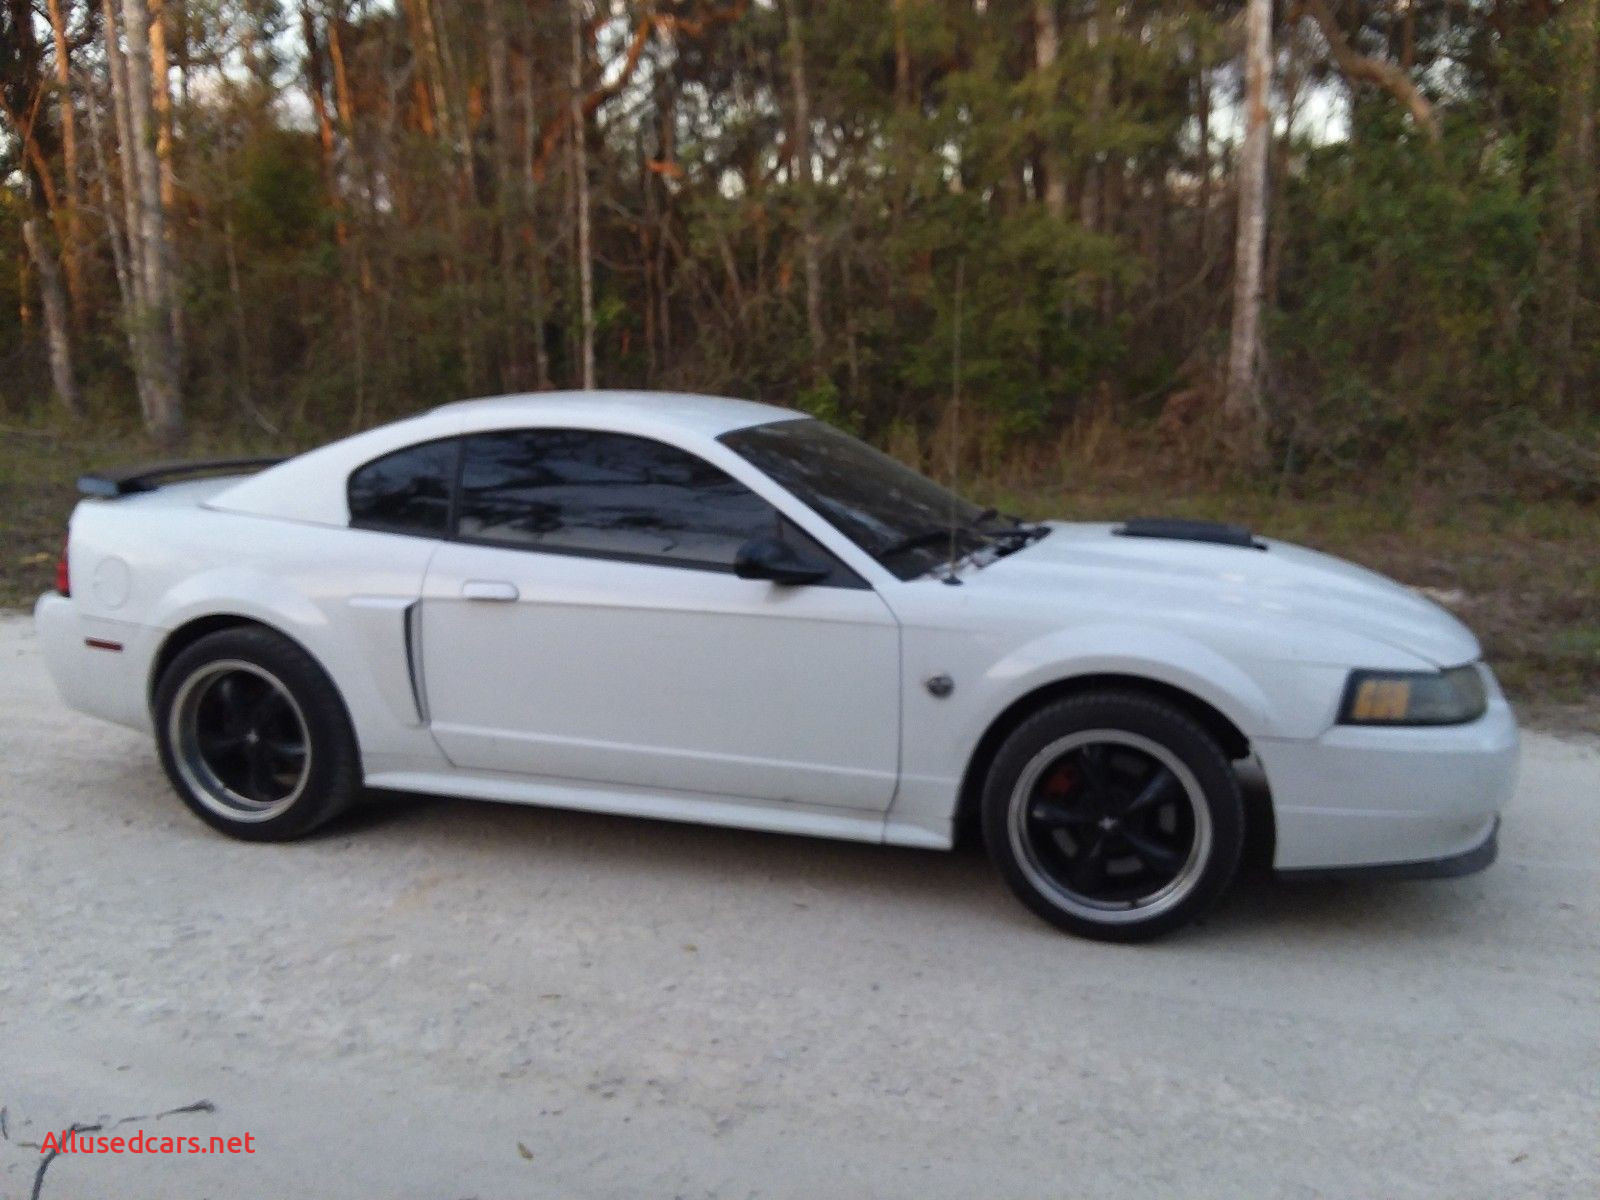 2004 Mustang Cobra Lovely 2004 ford Mustang Gt Us ford Mustang Pinterest